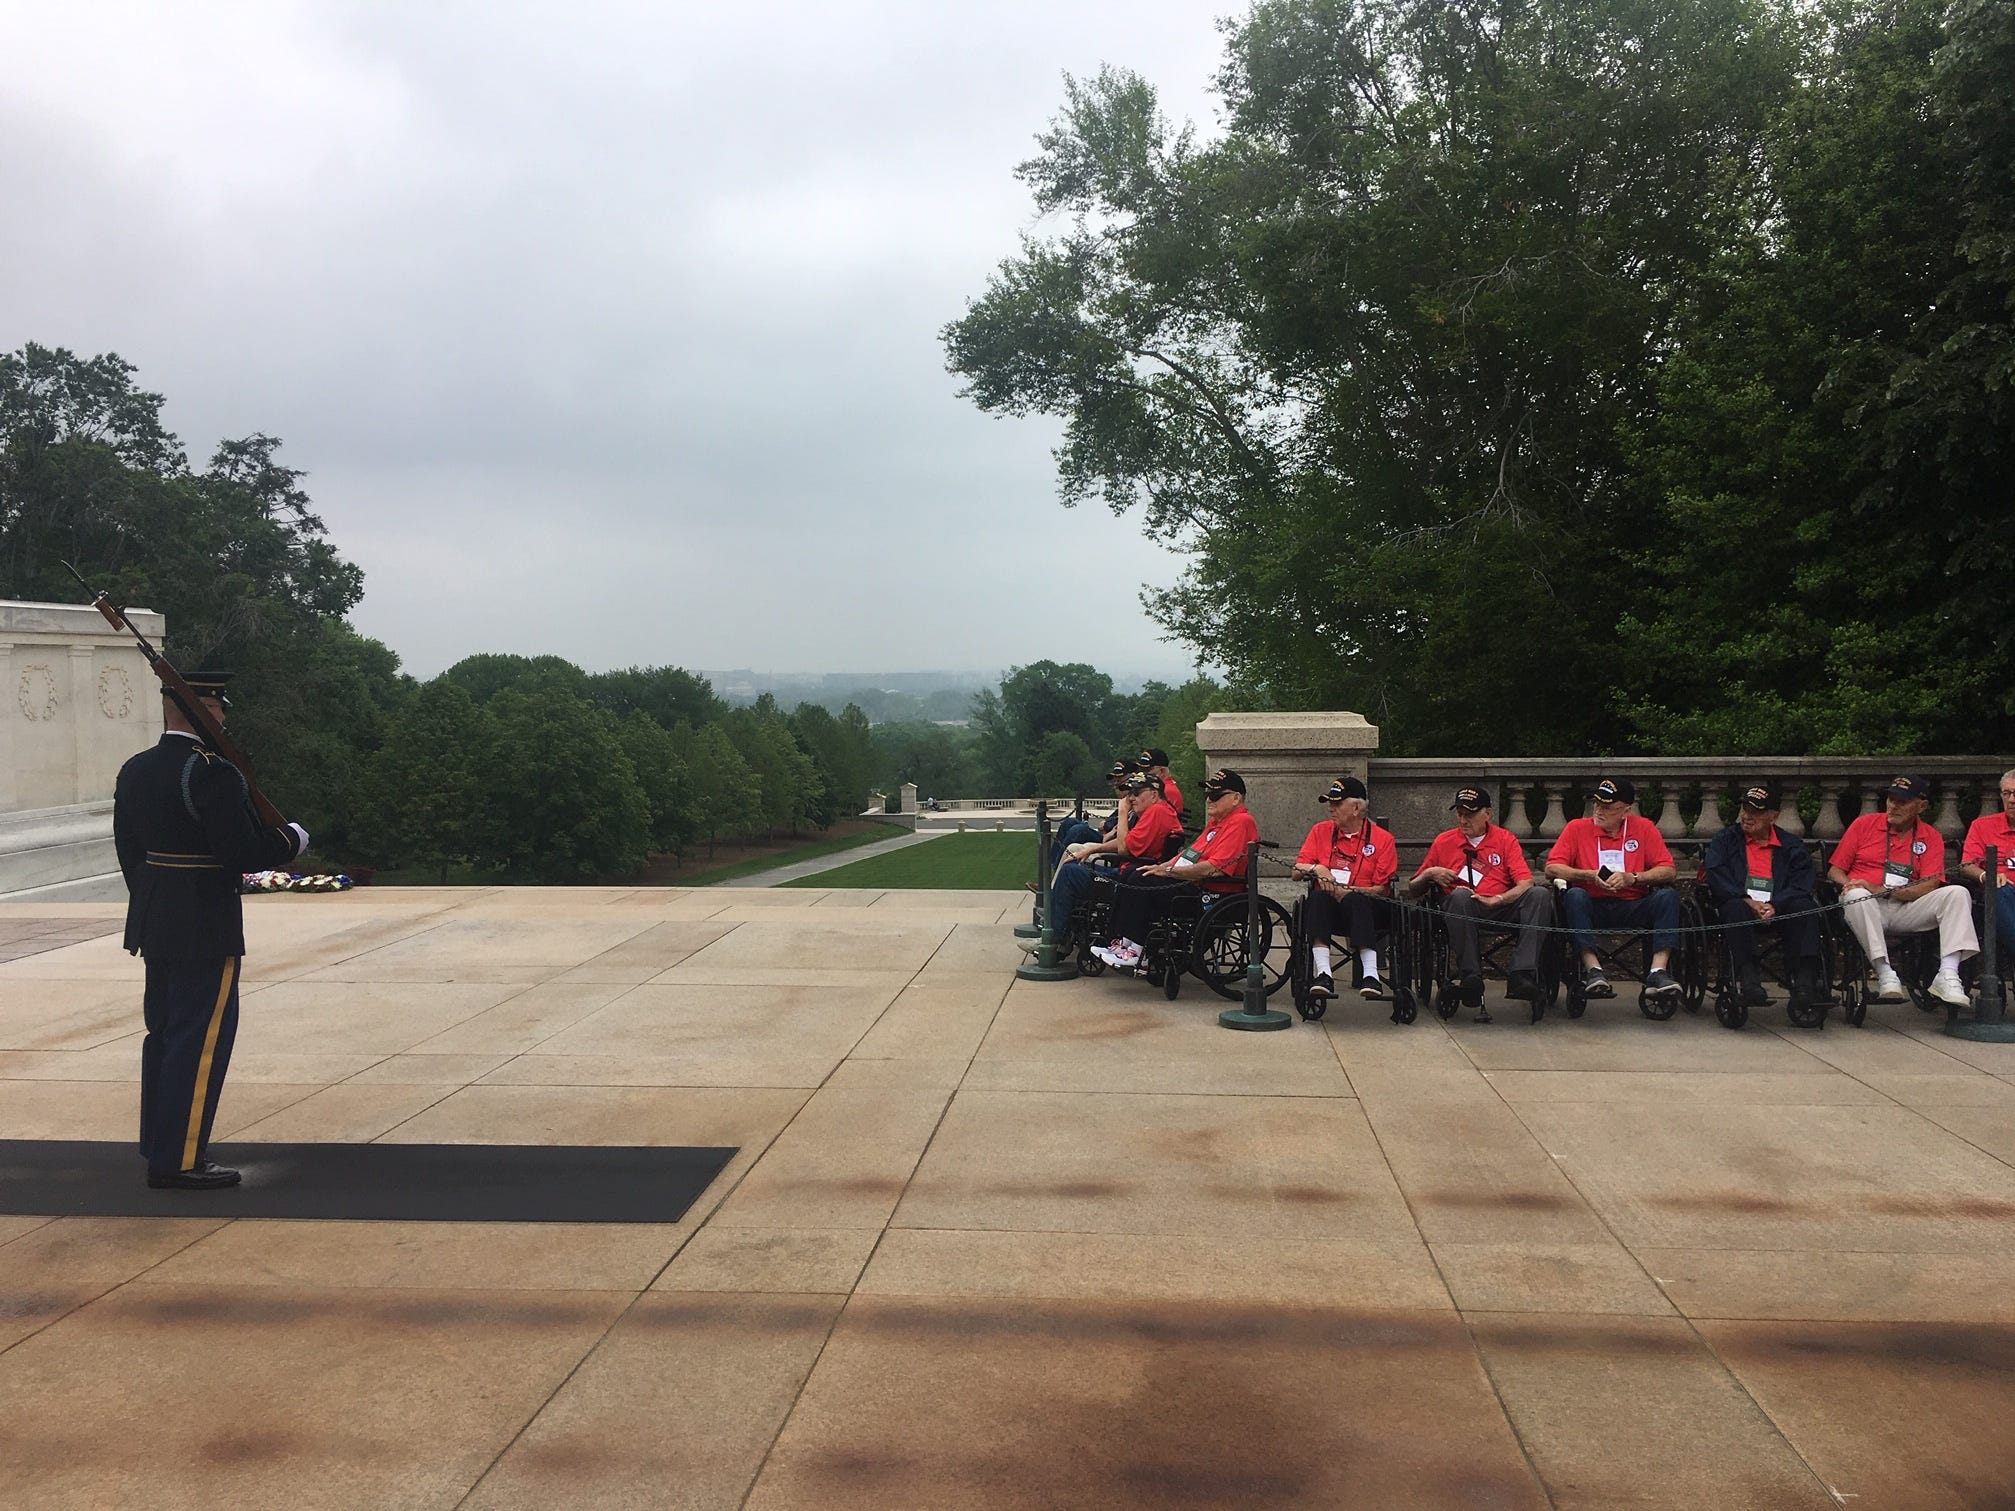 Collier-Lee Honor Flight veterans are position to witness the changing of the guard ceremony at the Tomb of the Unknowns at Arlington National Cemetery on Saturday, May 4, 2019.